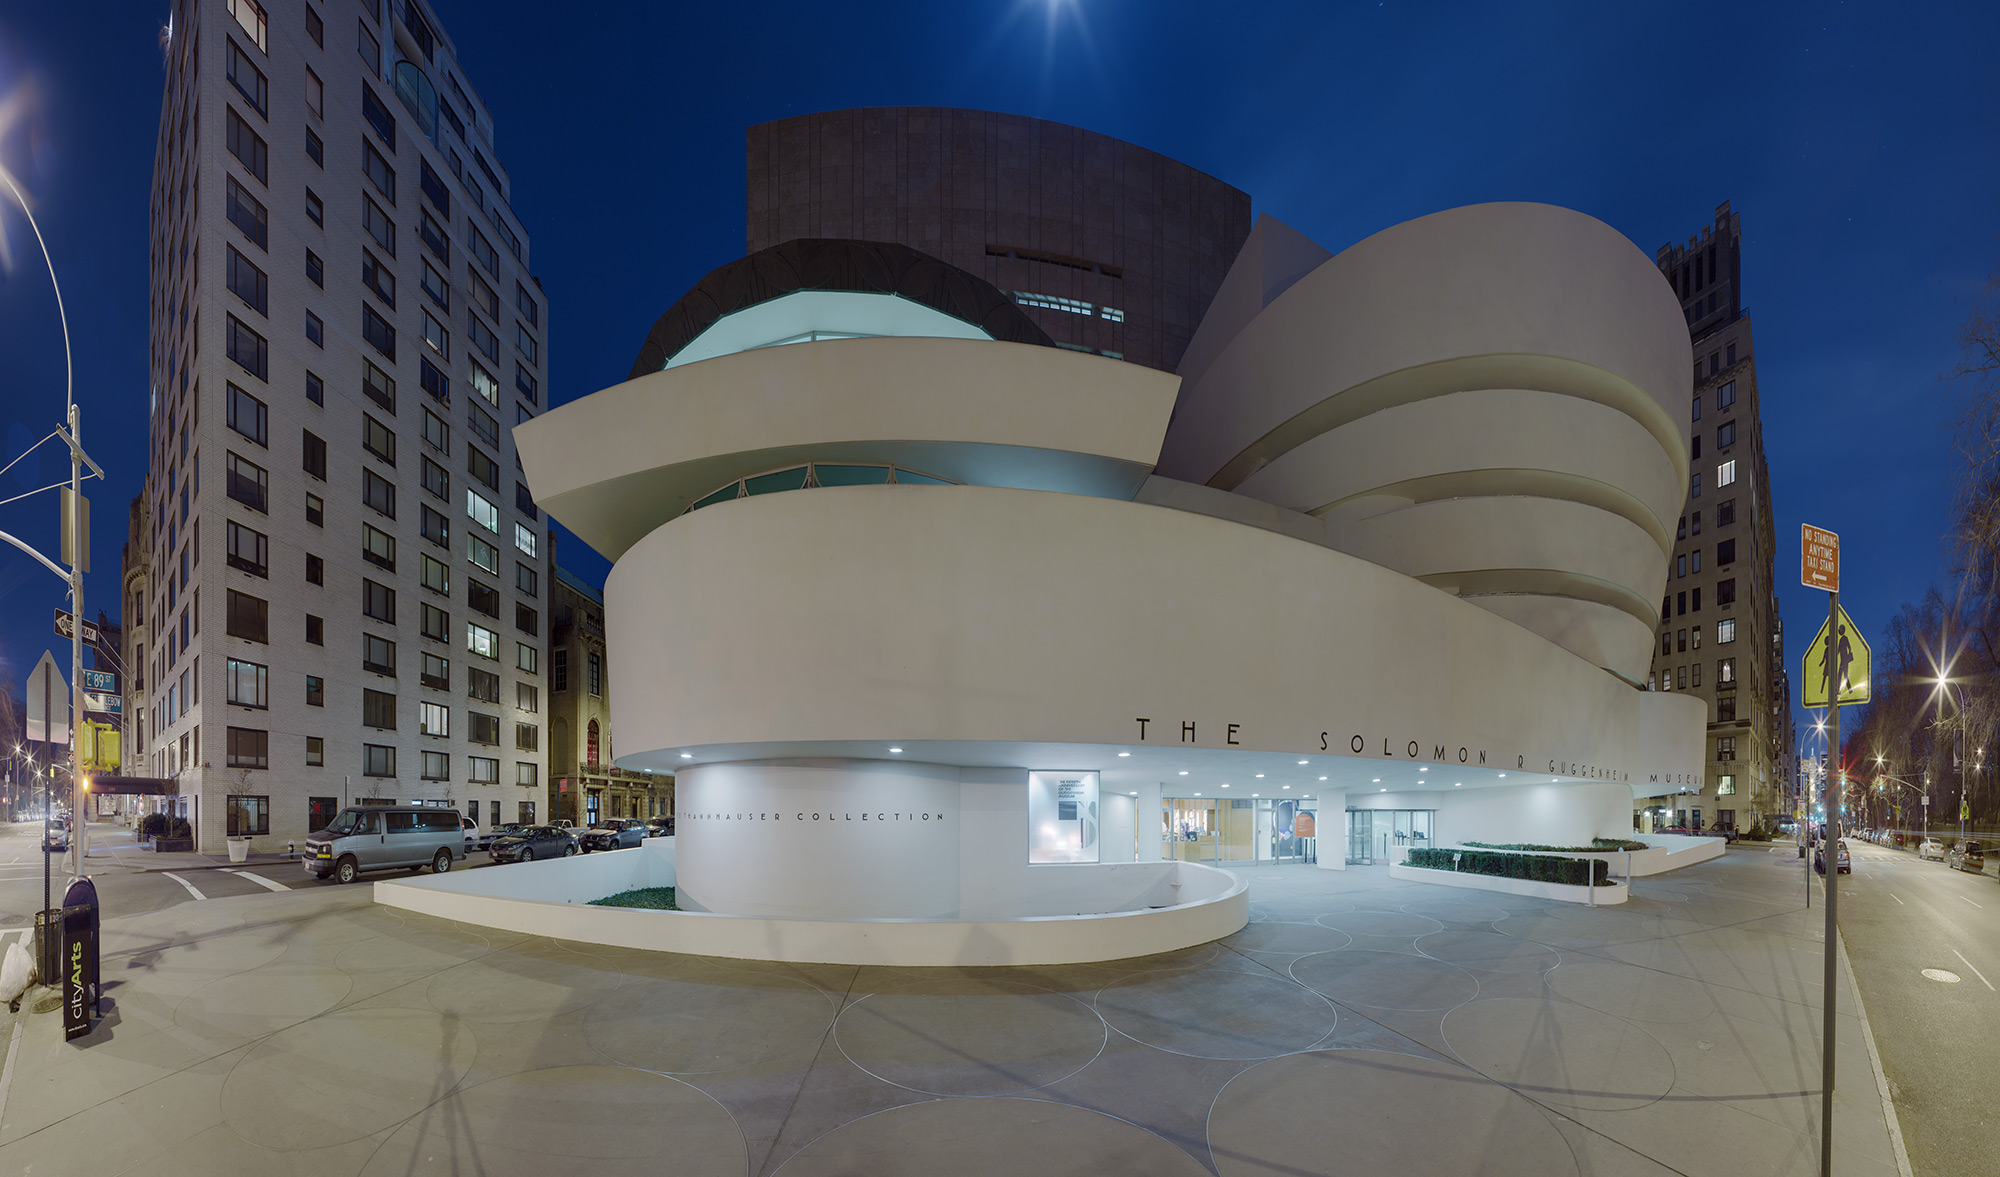 New York's Guggenheim